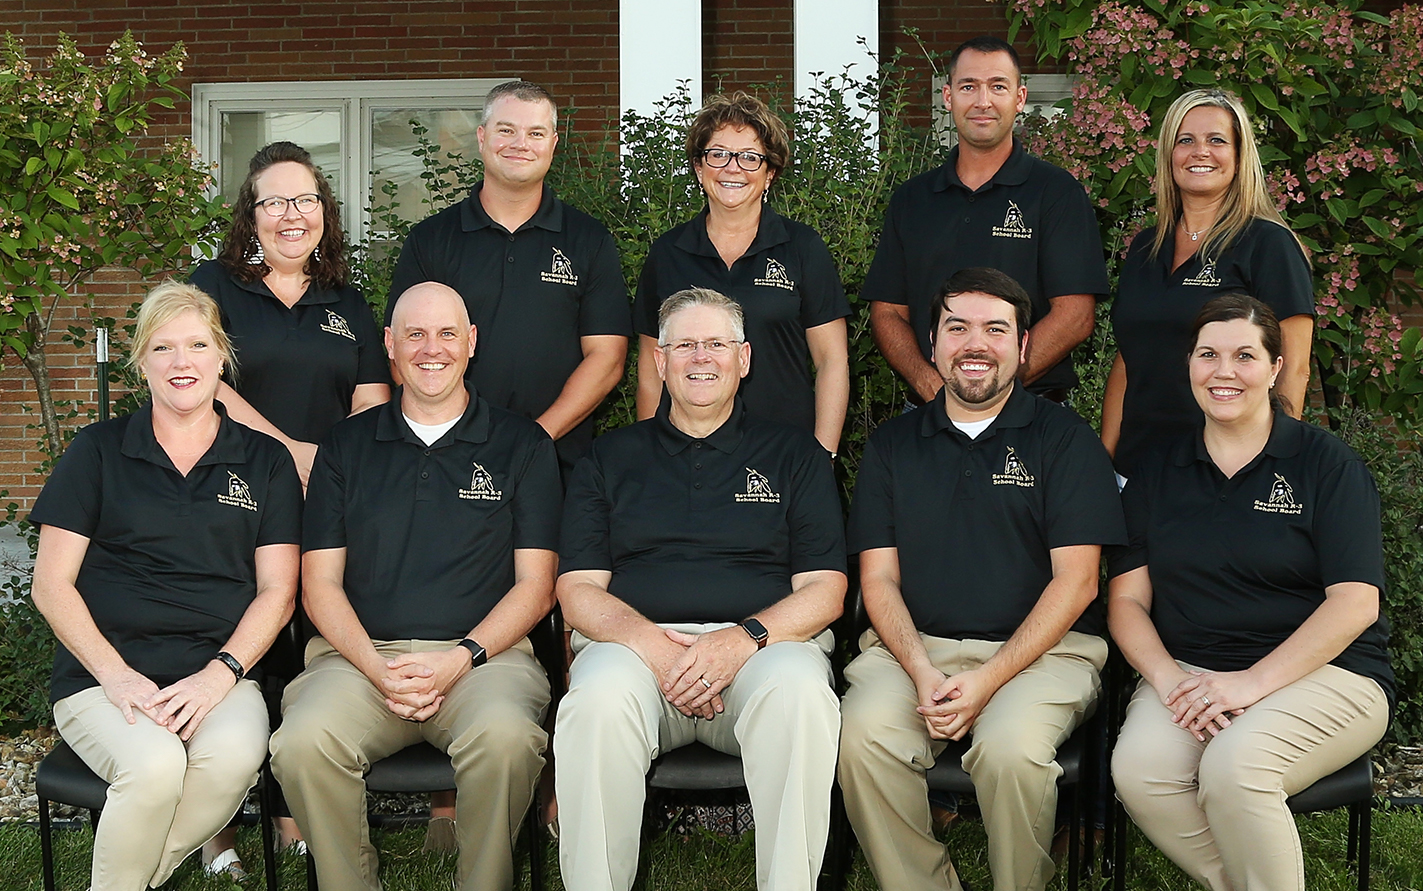 Group Picture of Board of Education